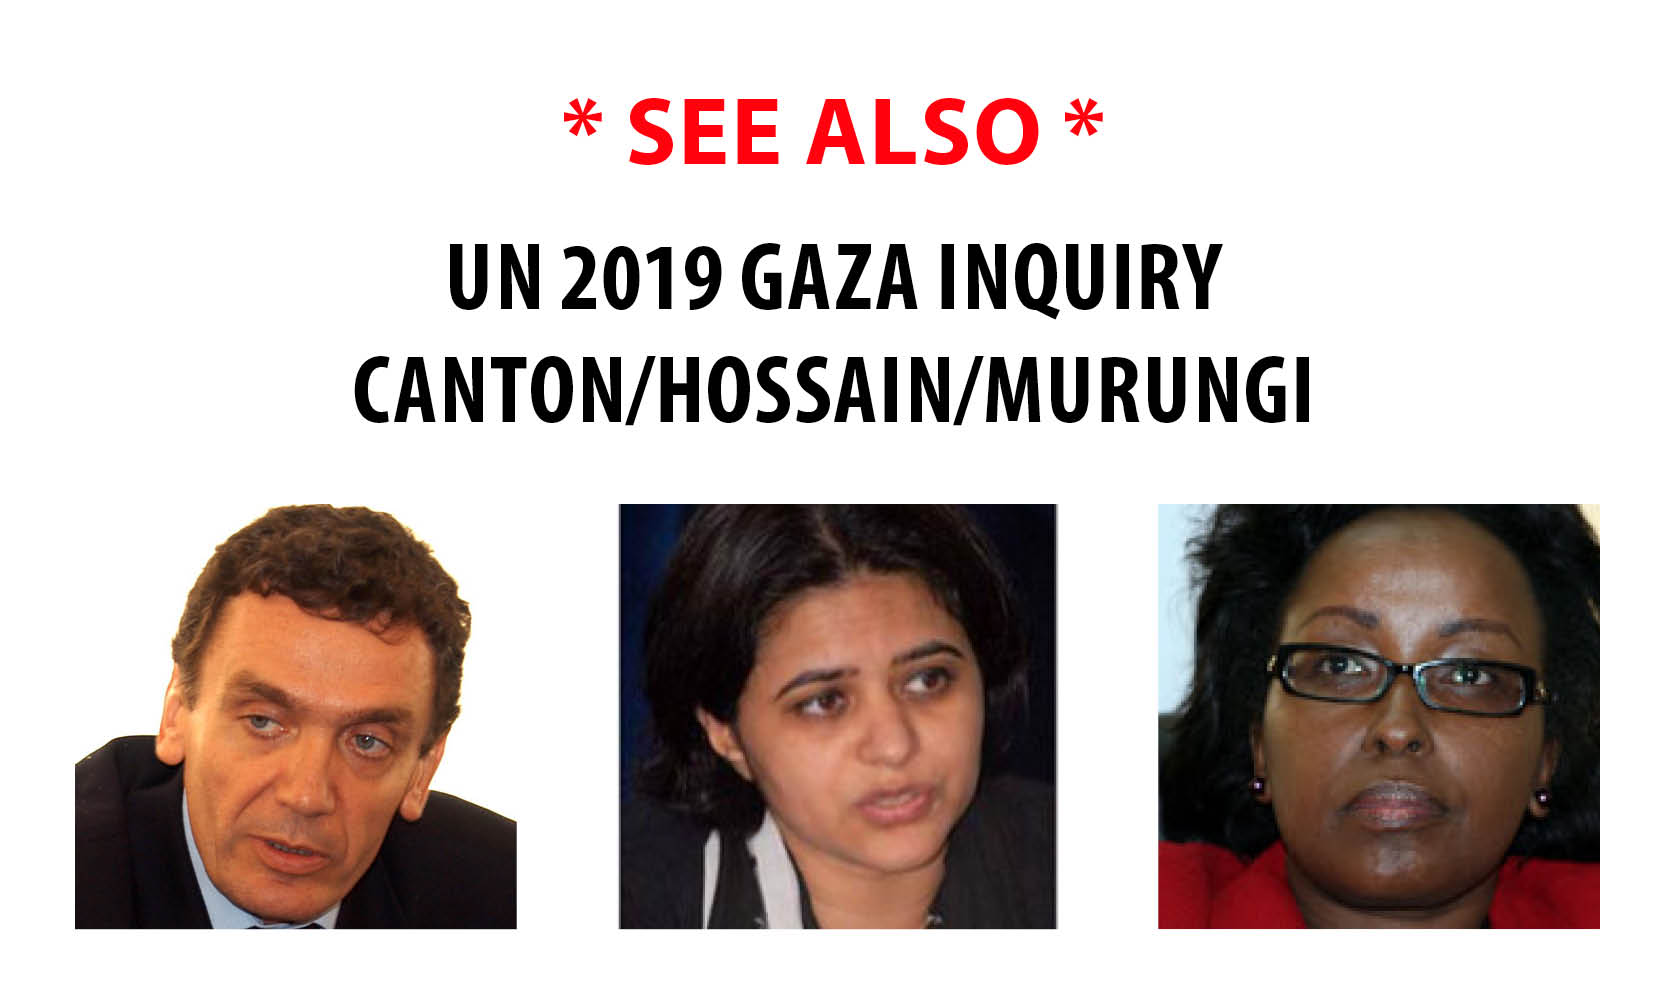 See also: UN Human Rights Council 2019 Gaza Commission of Inquiry